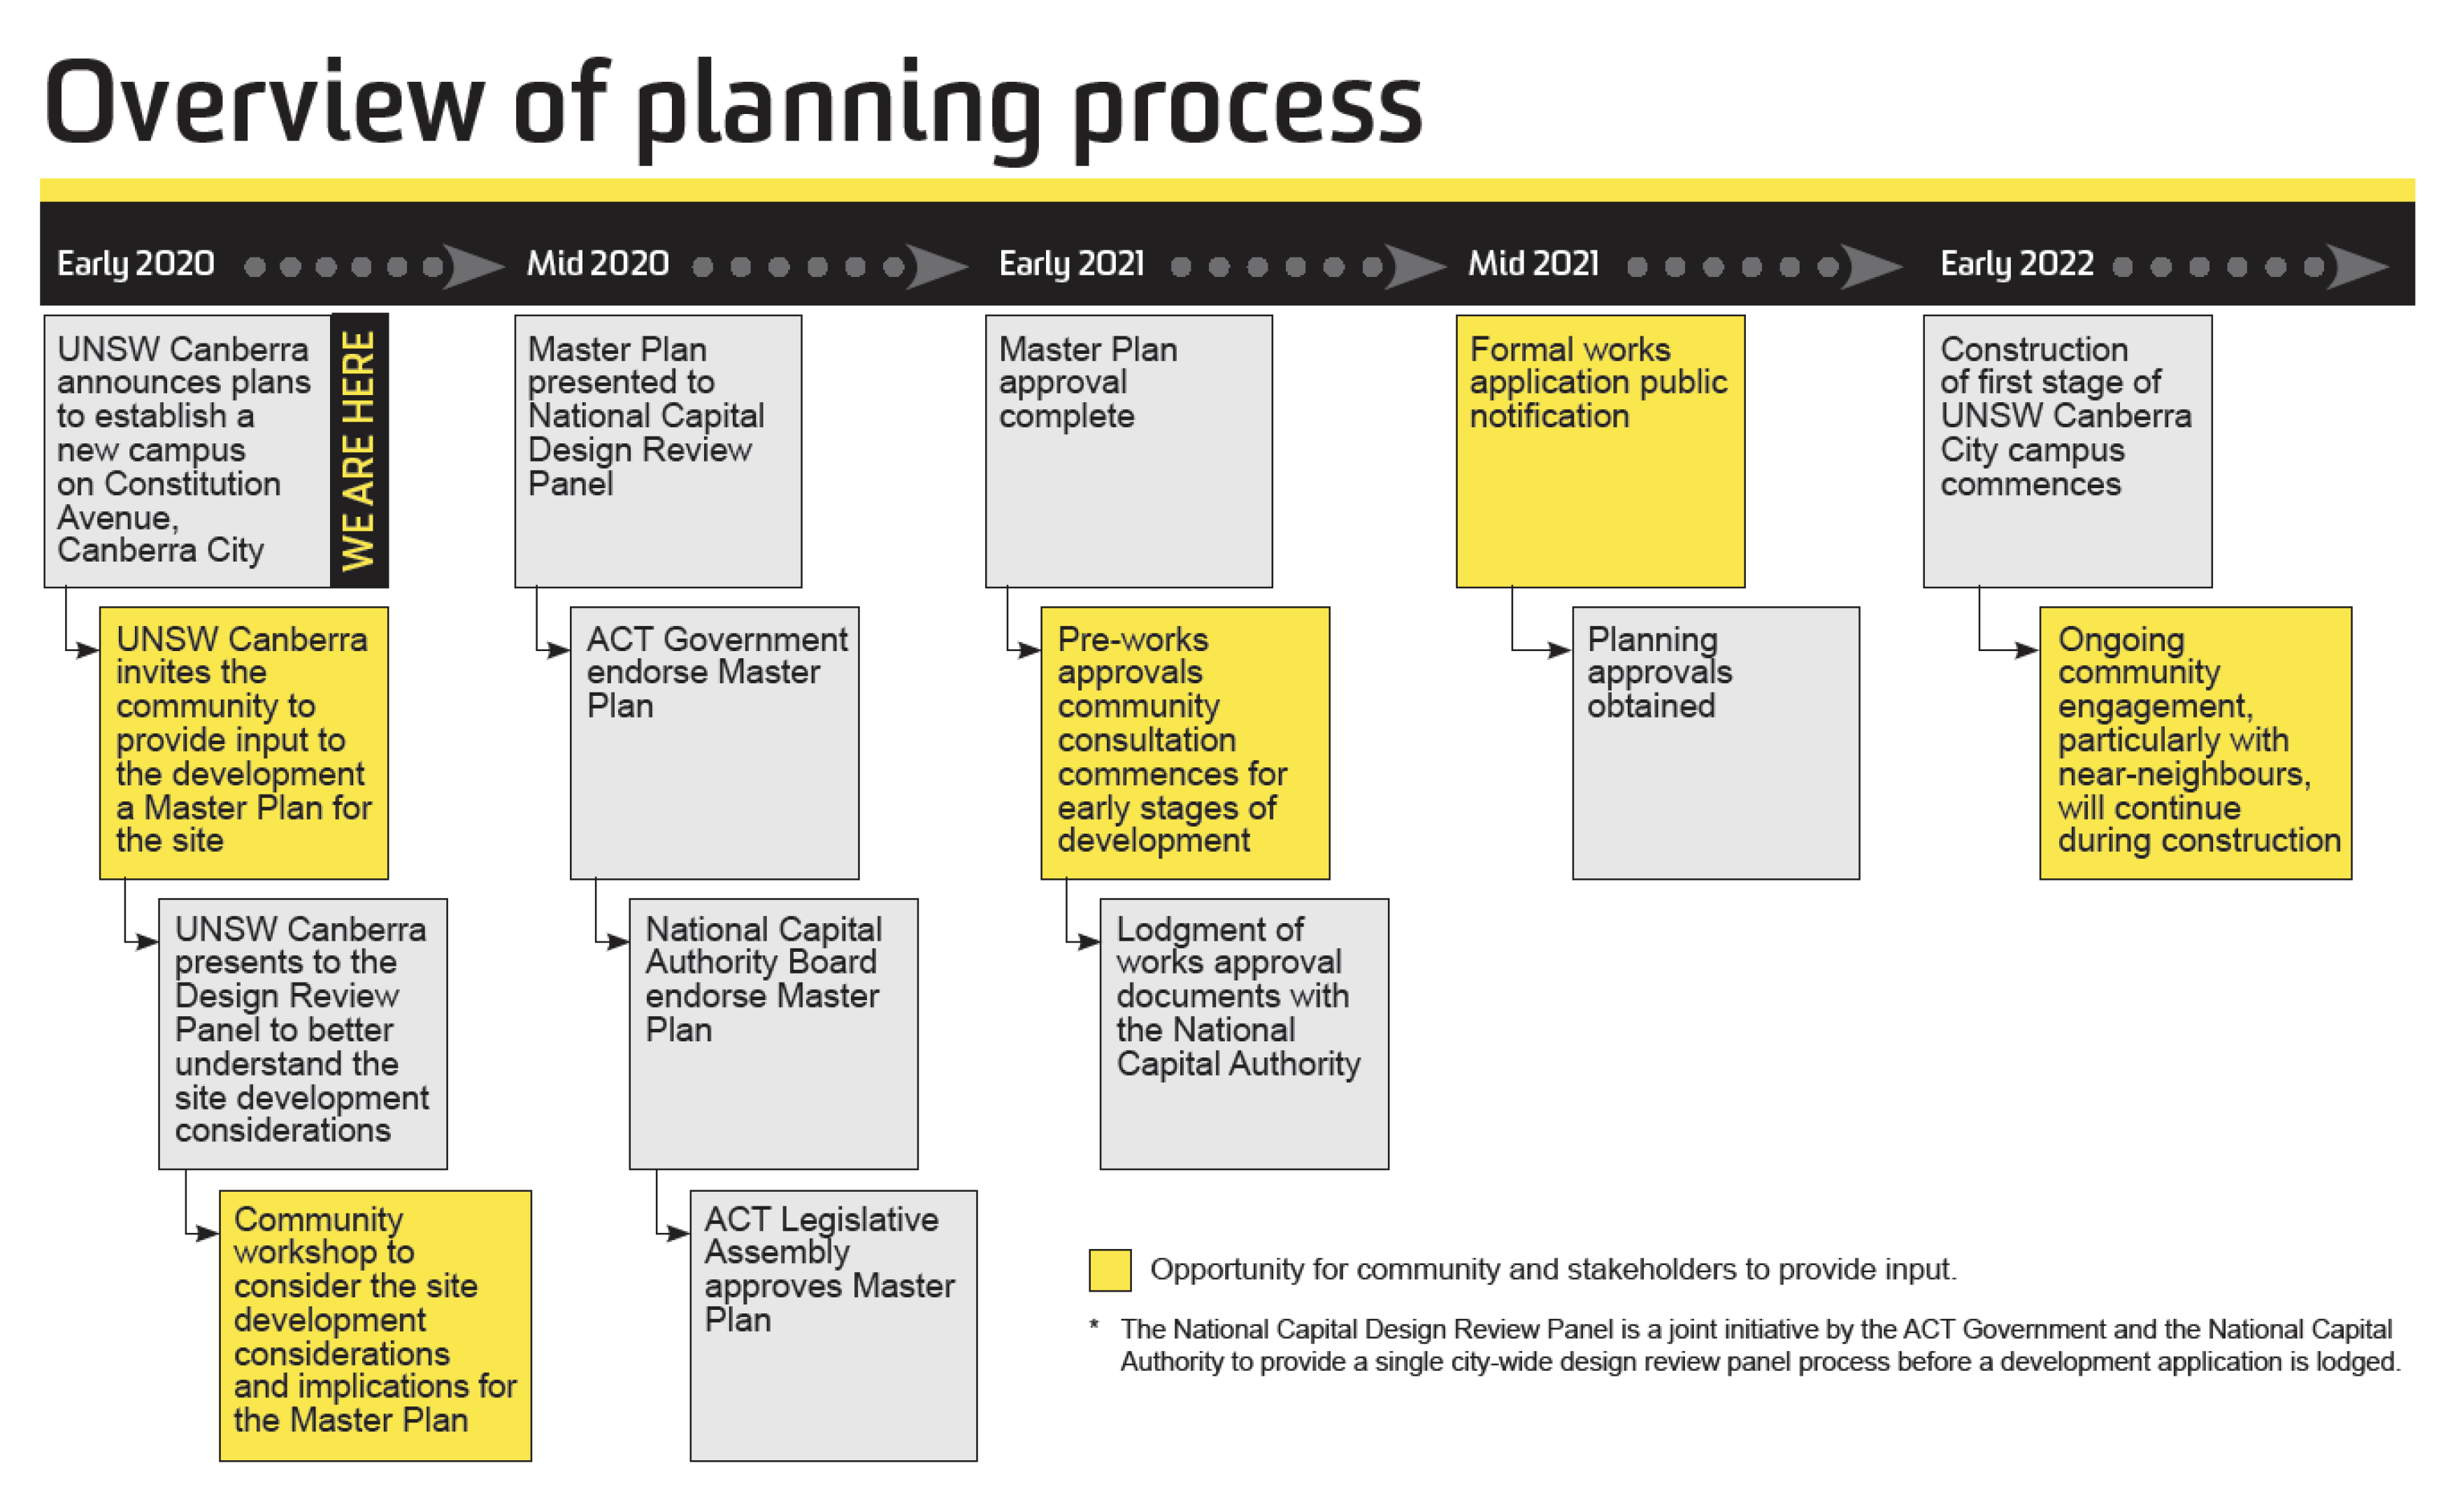 Overview Planning Process